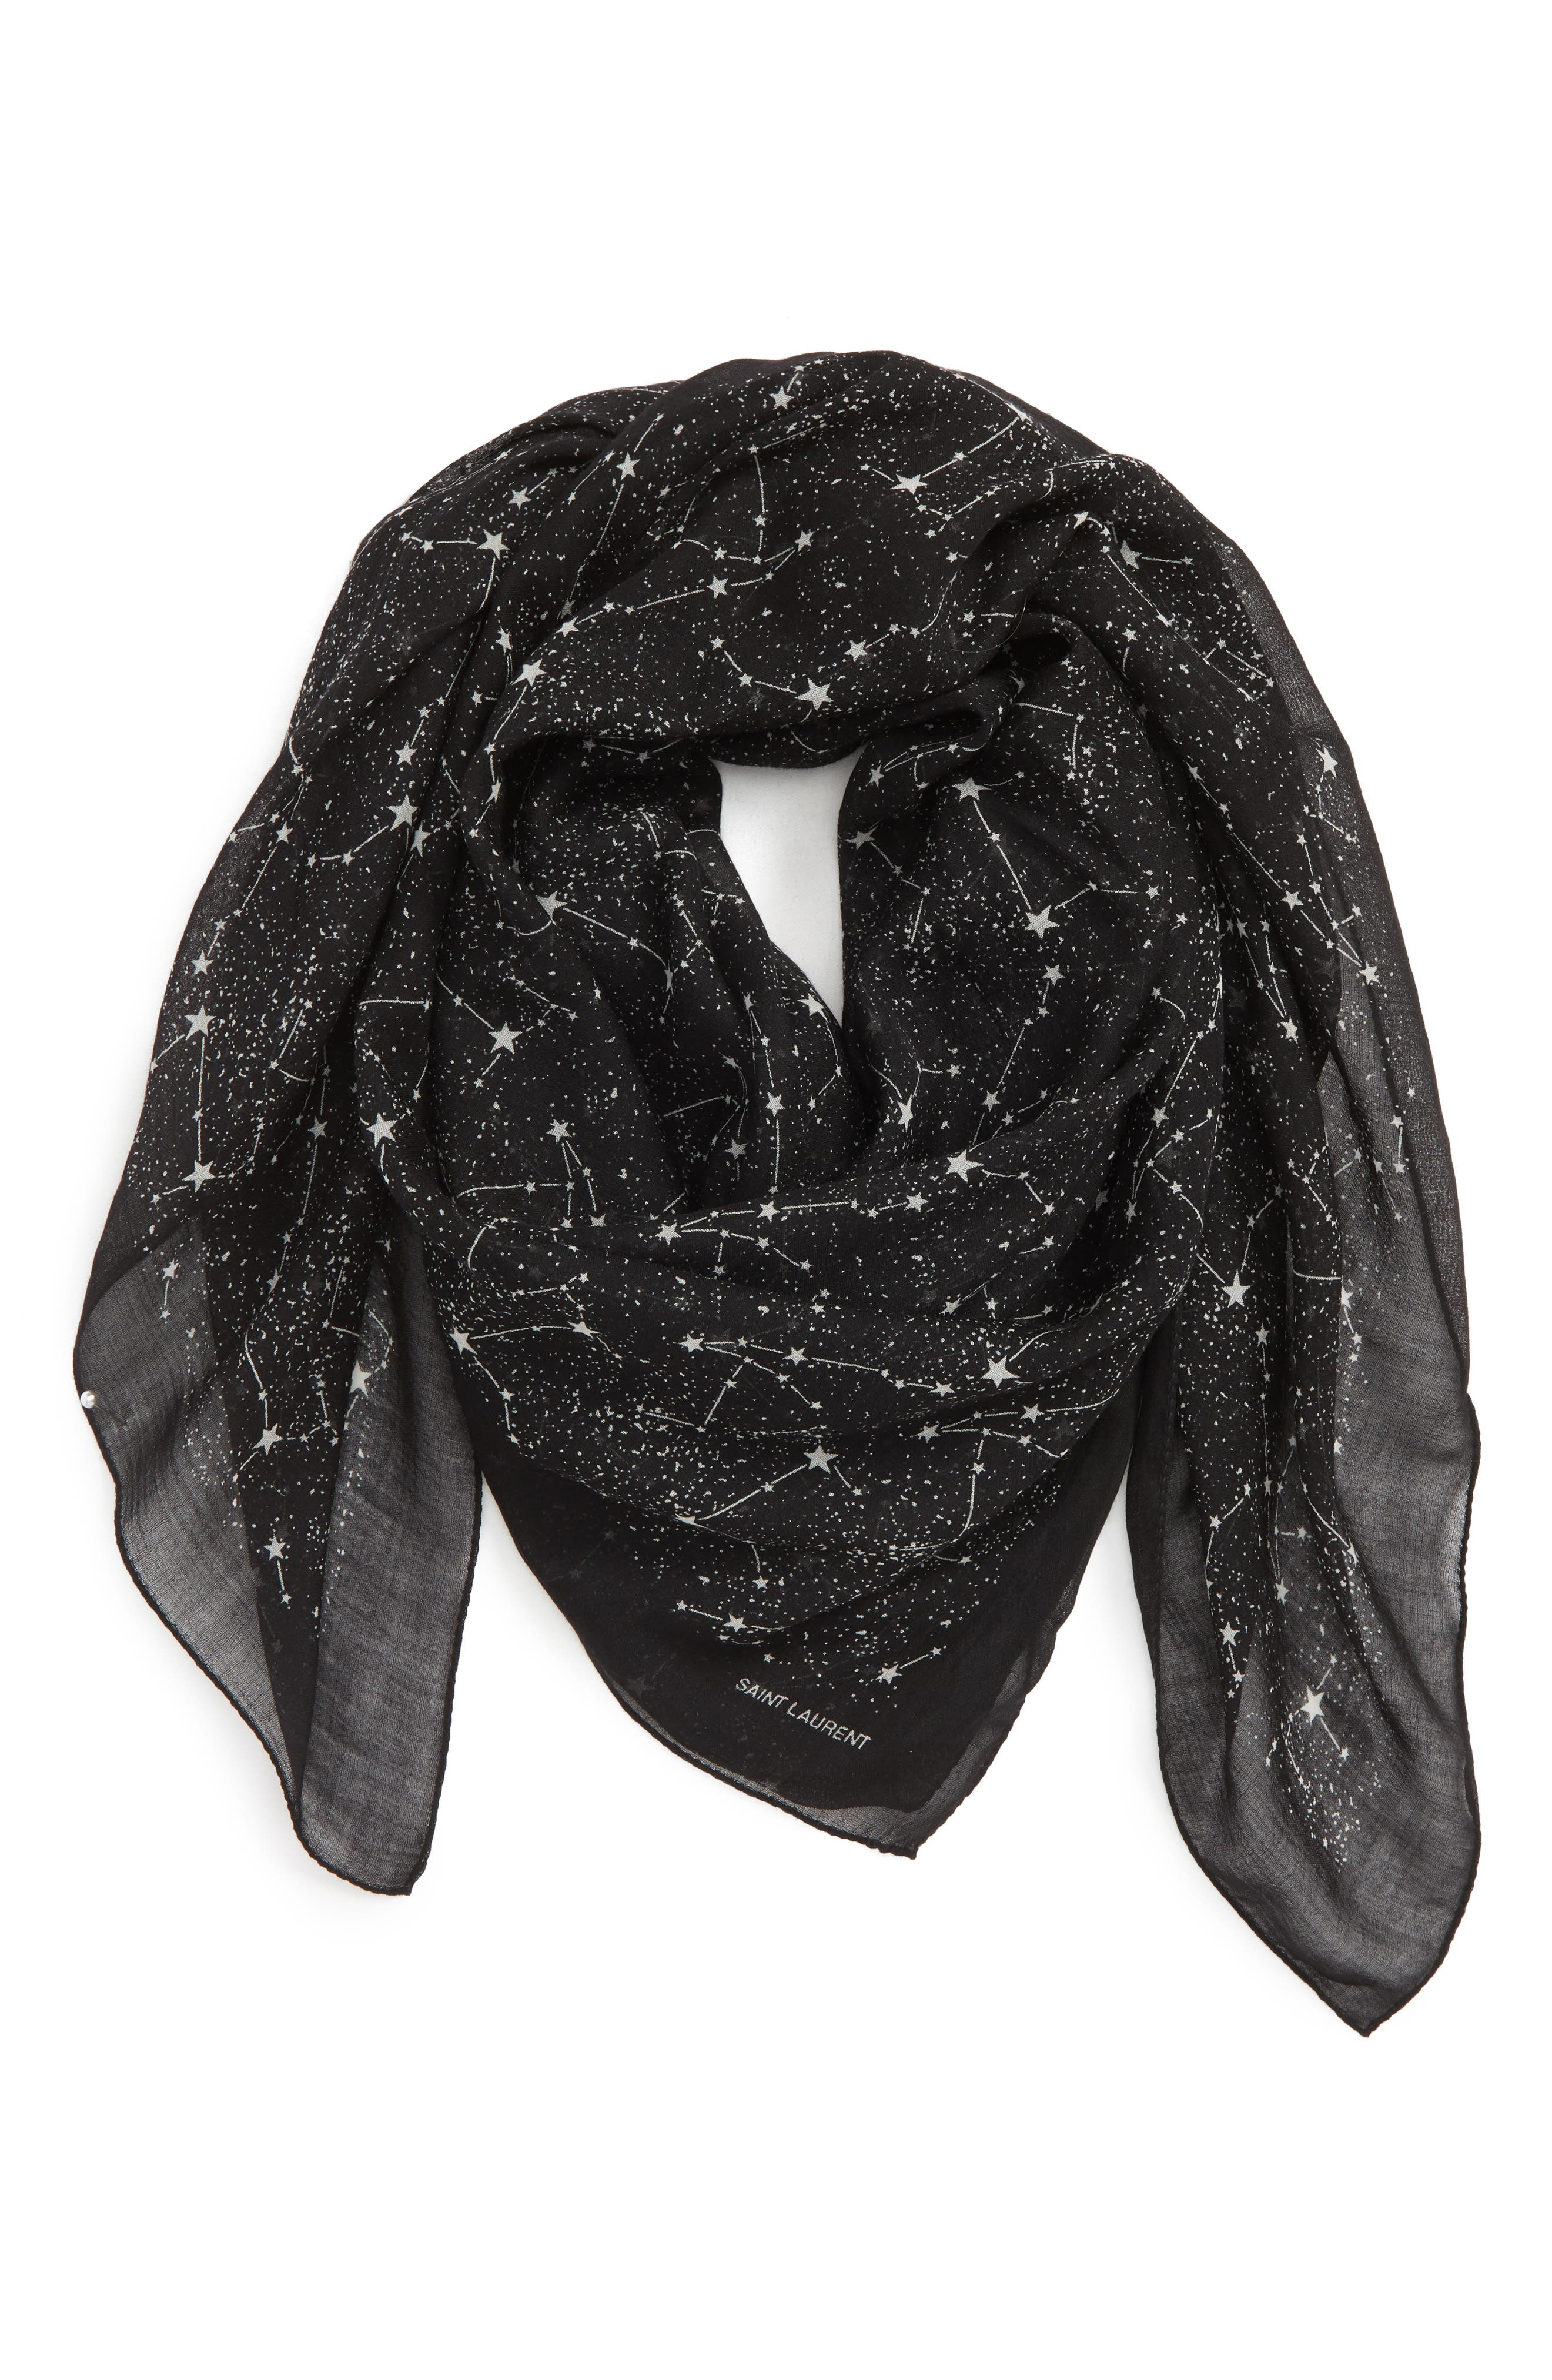 SAINT LAURENT,                             Constellation Square Wool Scarf,                             Main thumbnail 1, color,                             BLACK/ IVORY